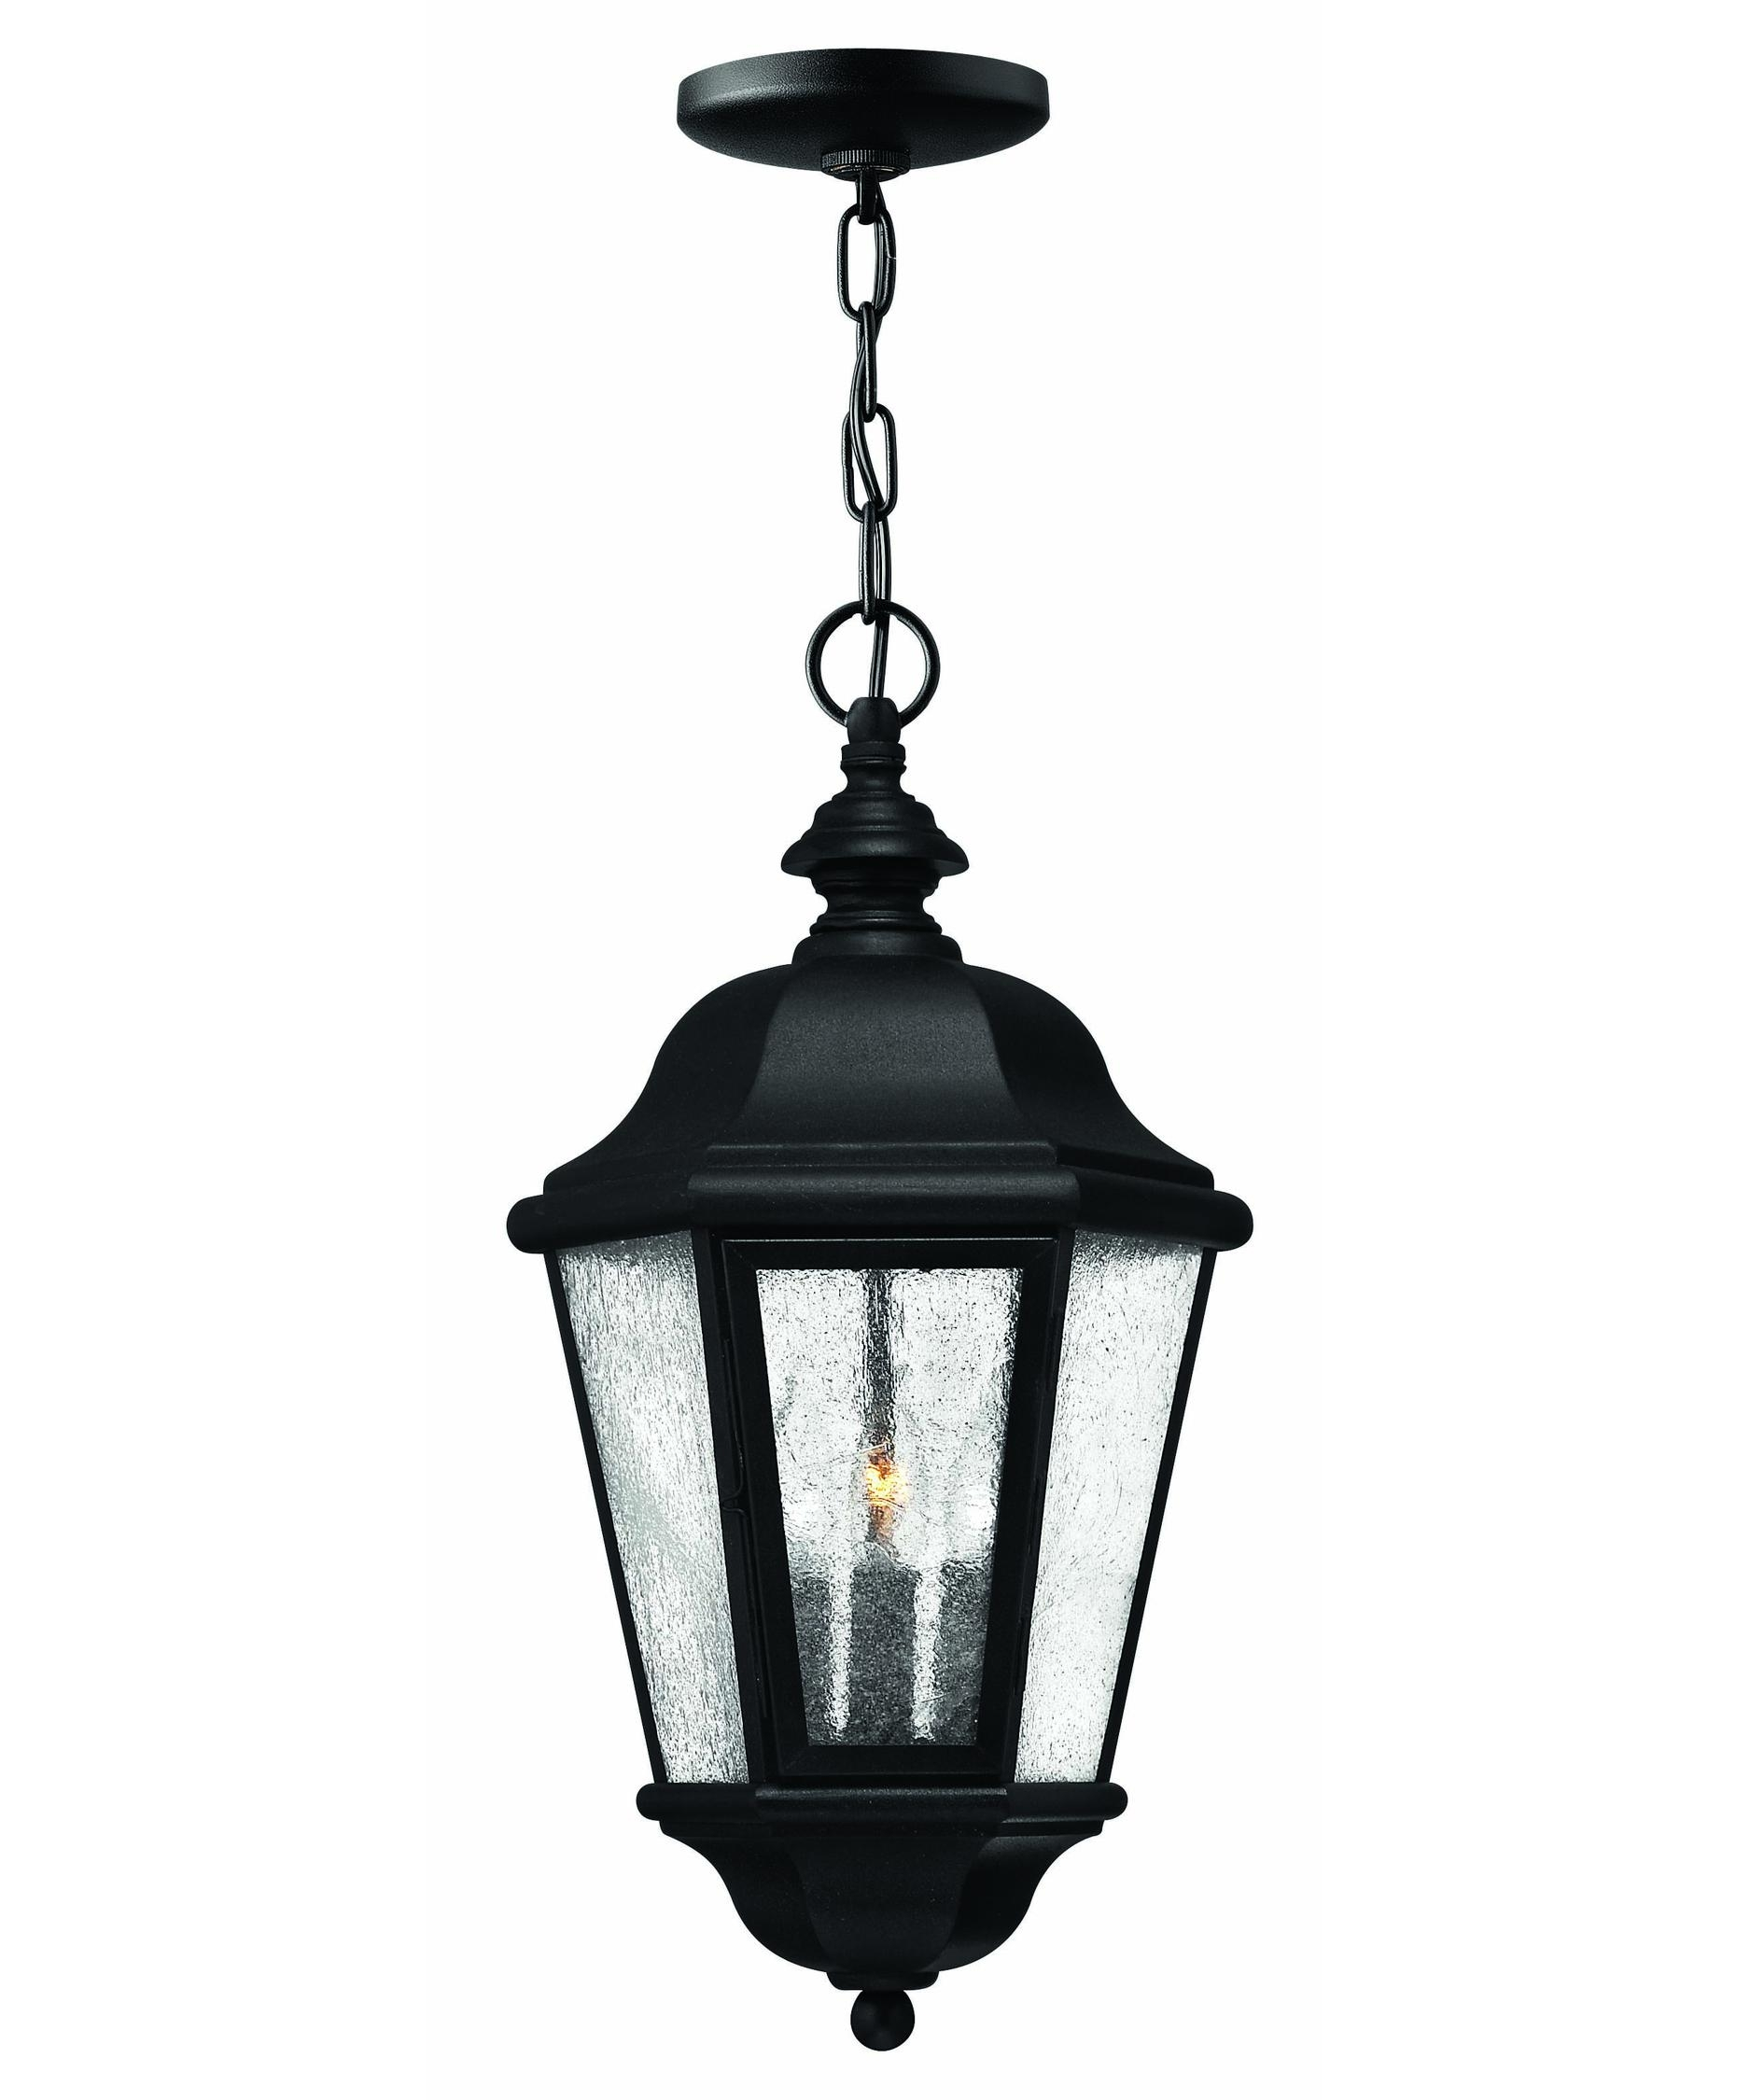 Hinkley Lighting 1672 Edgewater 10 Inch Wide 3 Light Outdoor Hanging Pertaining To Outdoor Hanging Lanterns At Amazon (#7 of 15)